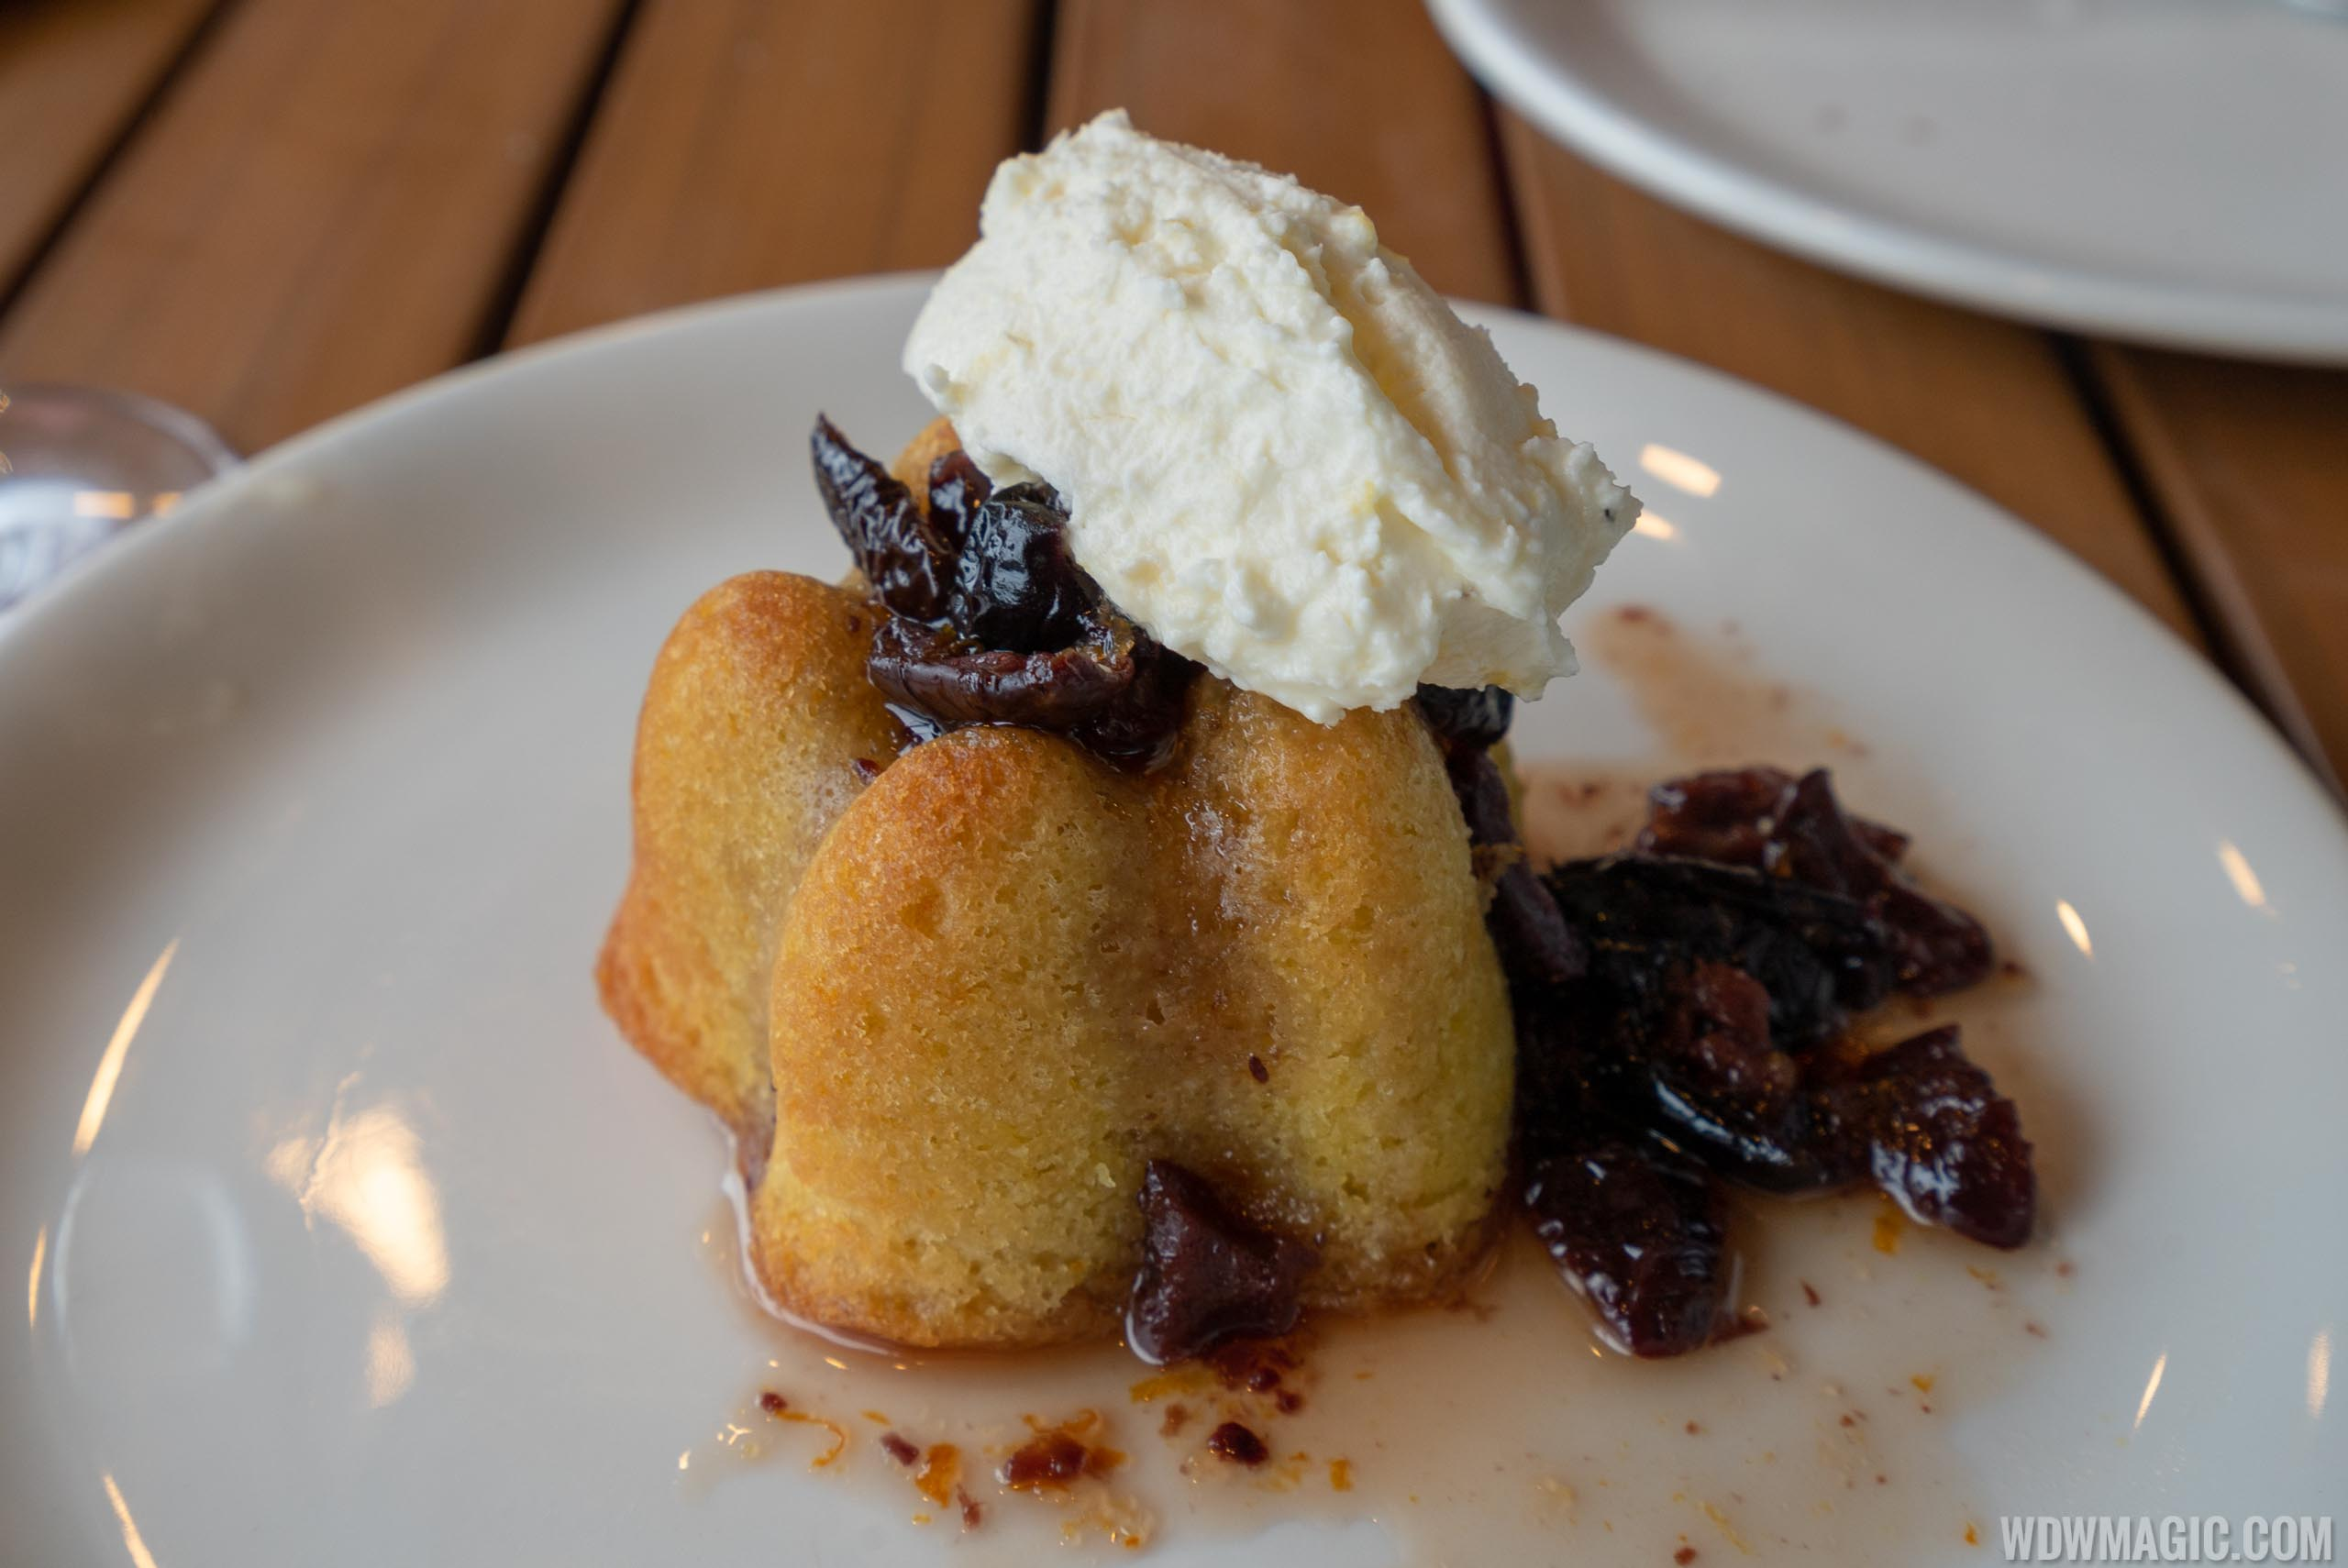 Wine Bar George - Olive Oil Cake $7